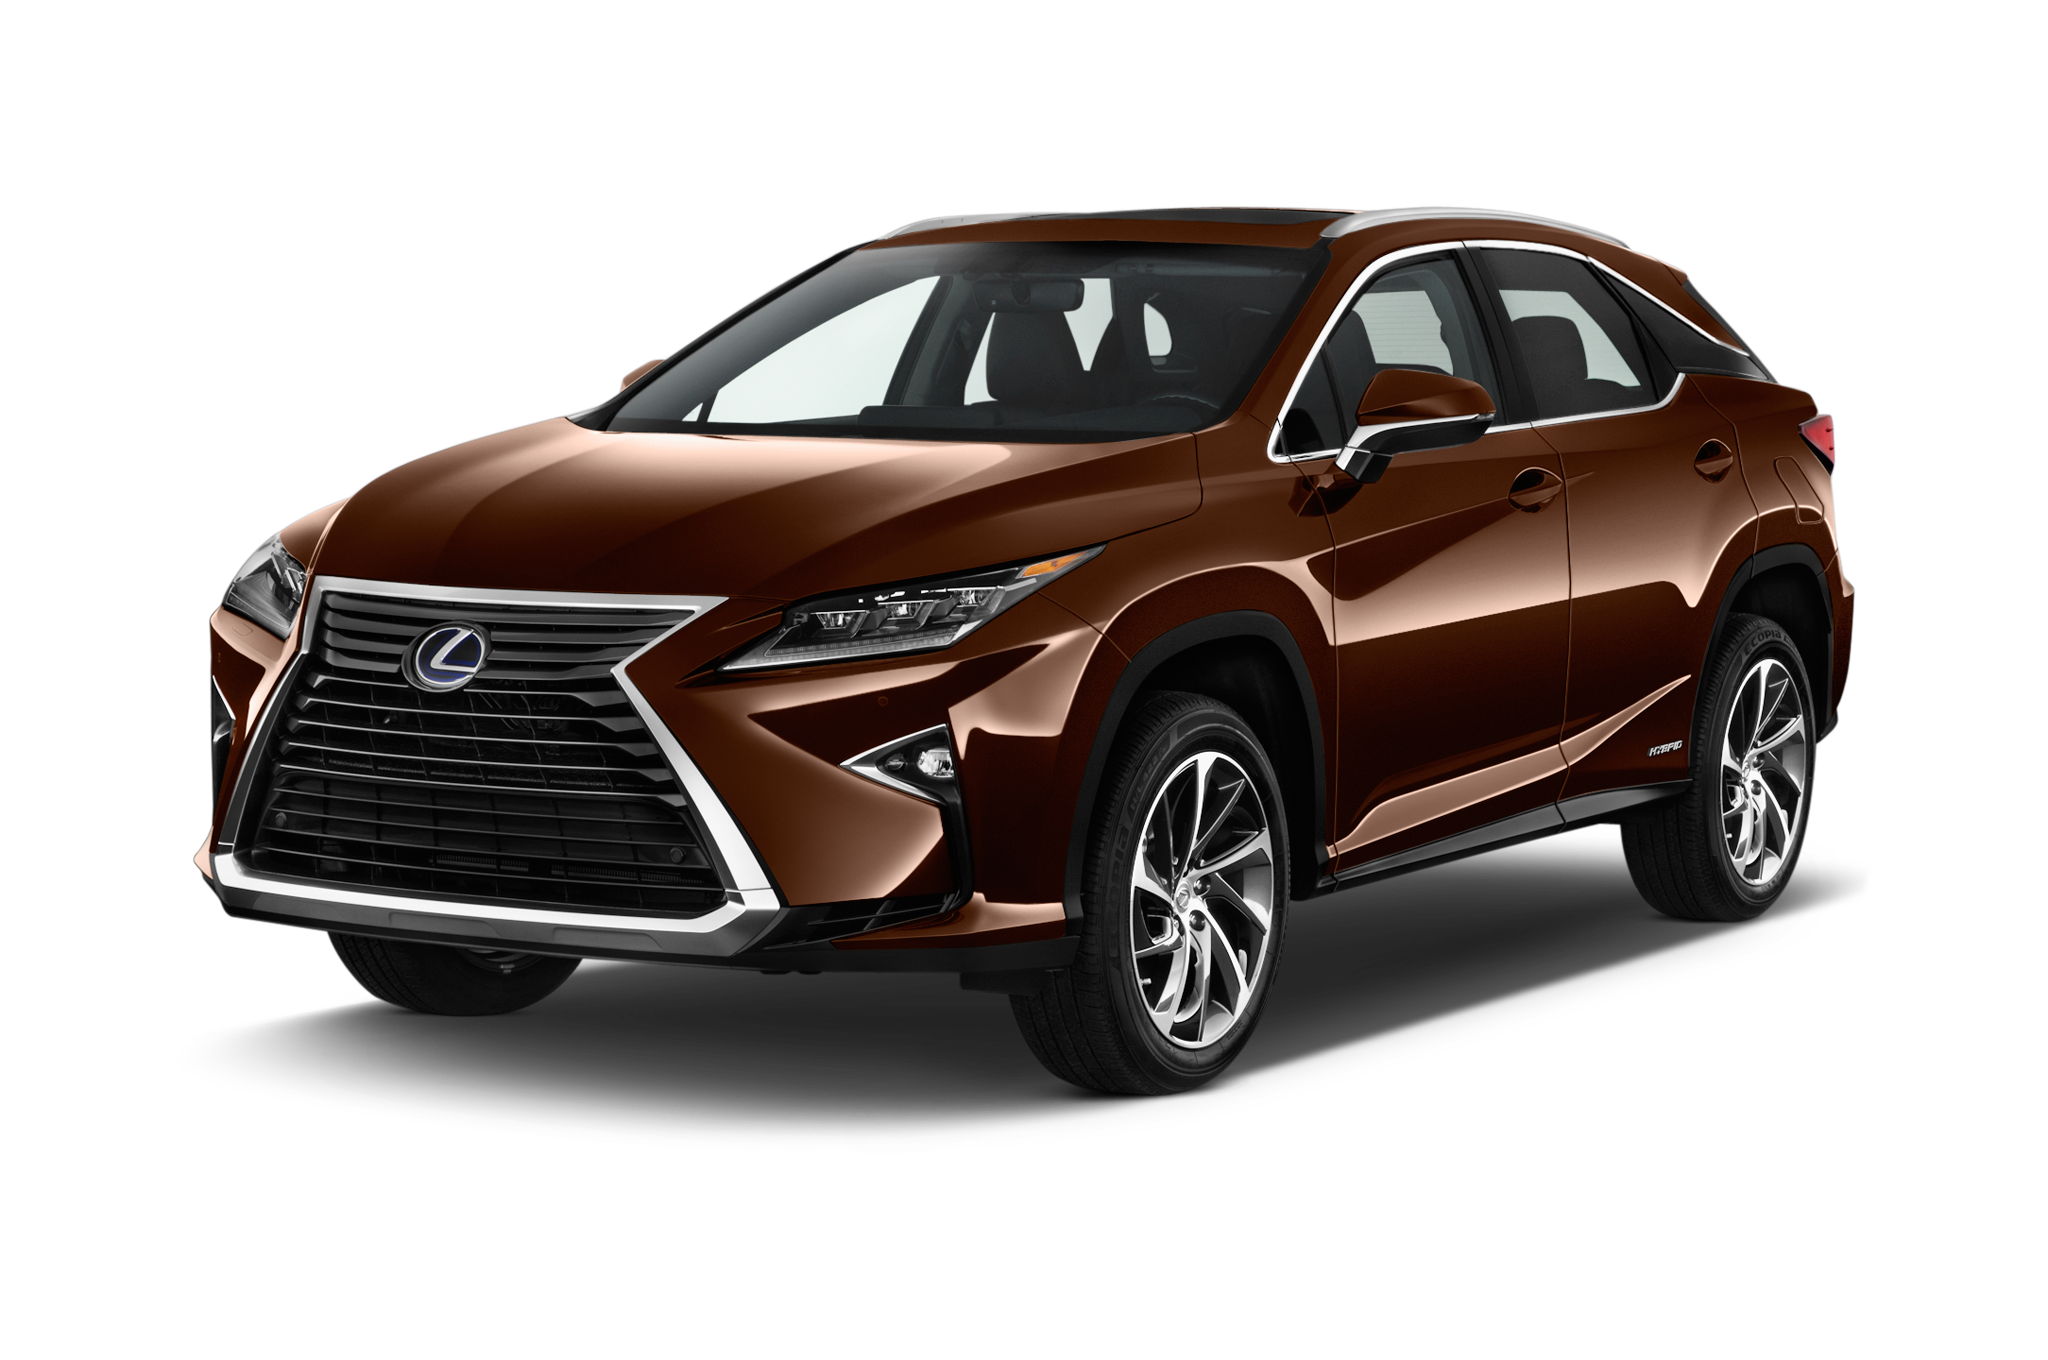 2017 lexus rx 450h hybrid 4x4 interior photos msn autos. Black Bedroom Furniture Sets. Home Design Ideas